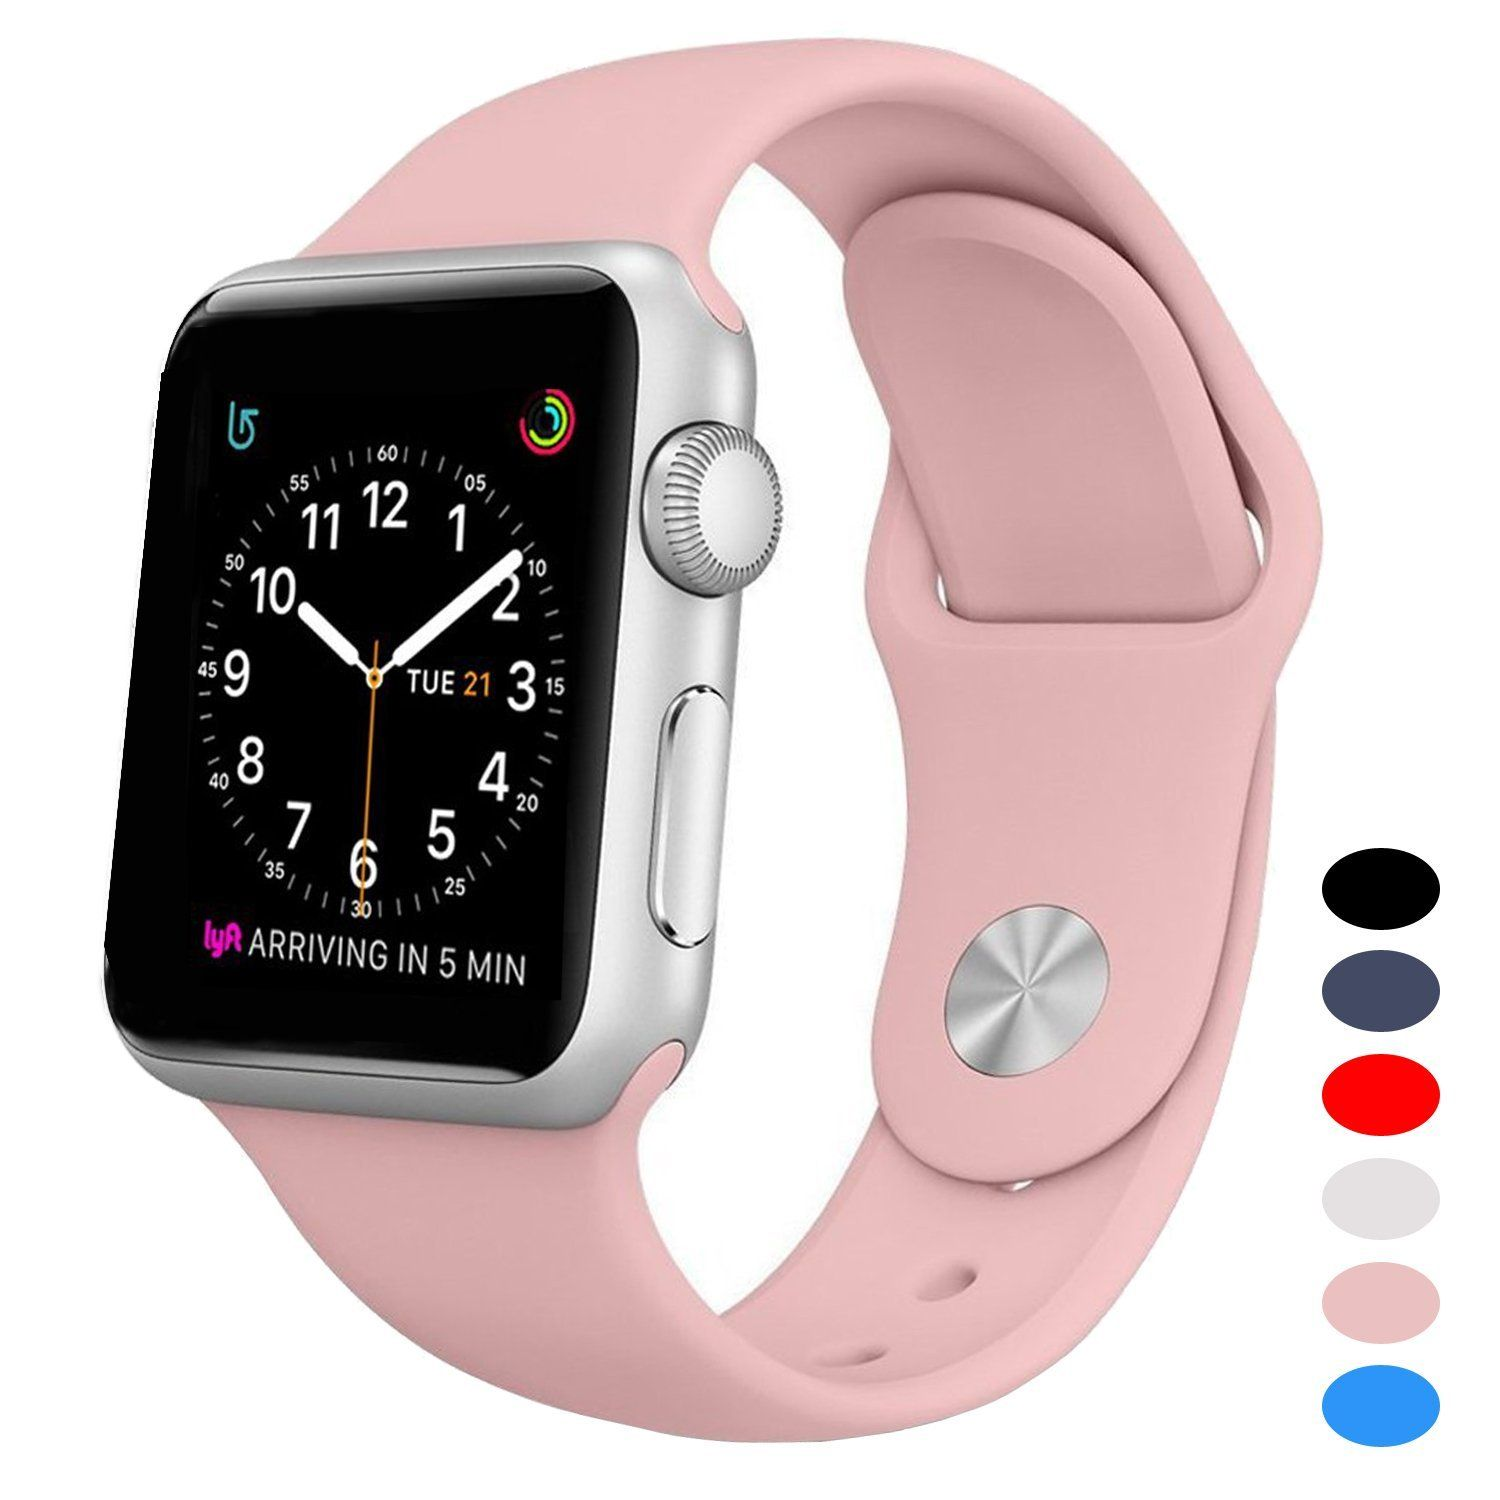 BANDEX Sport Band for Apple Watch 38mm, Soft Silicone